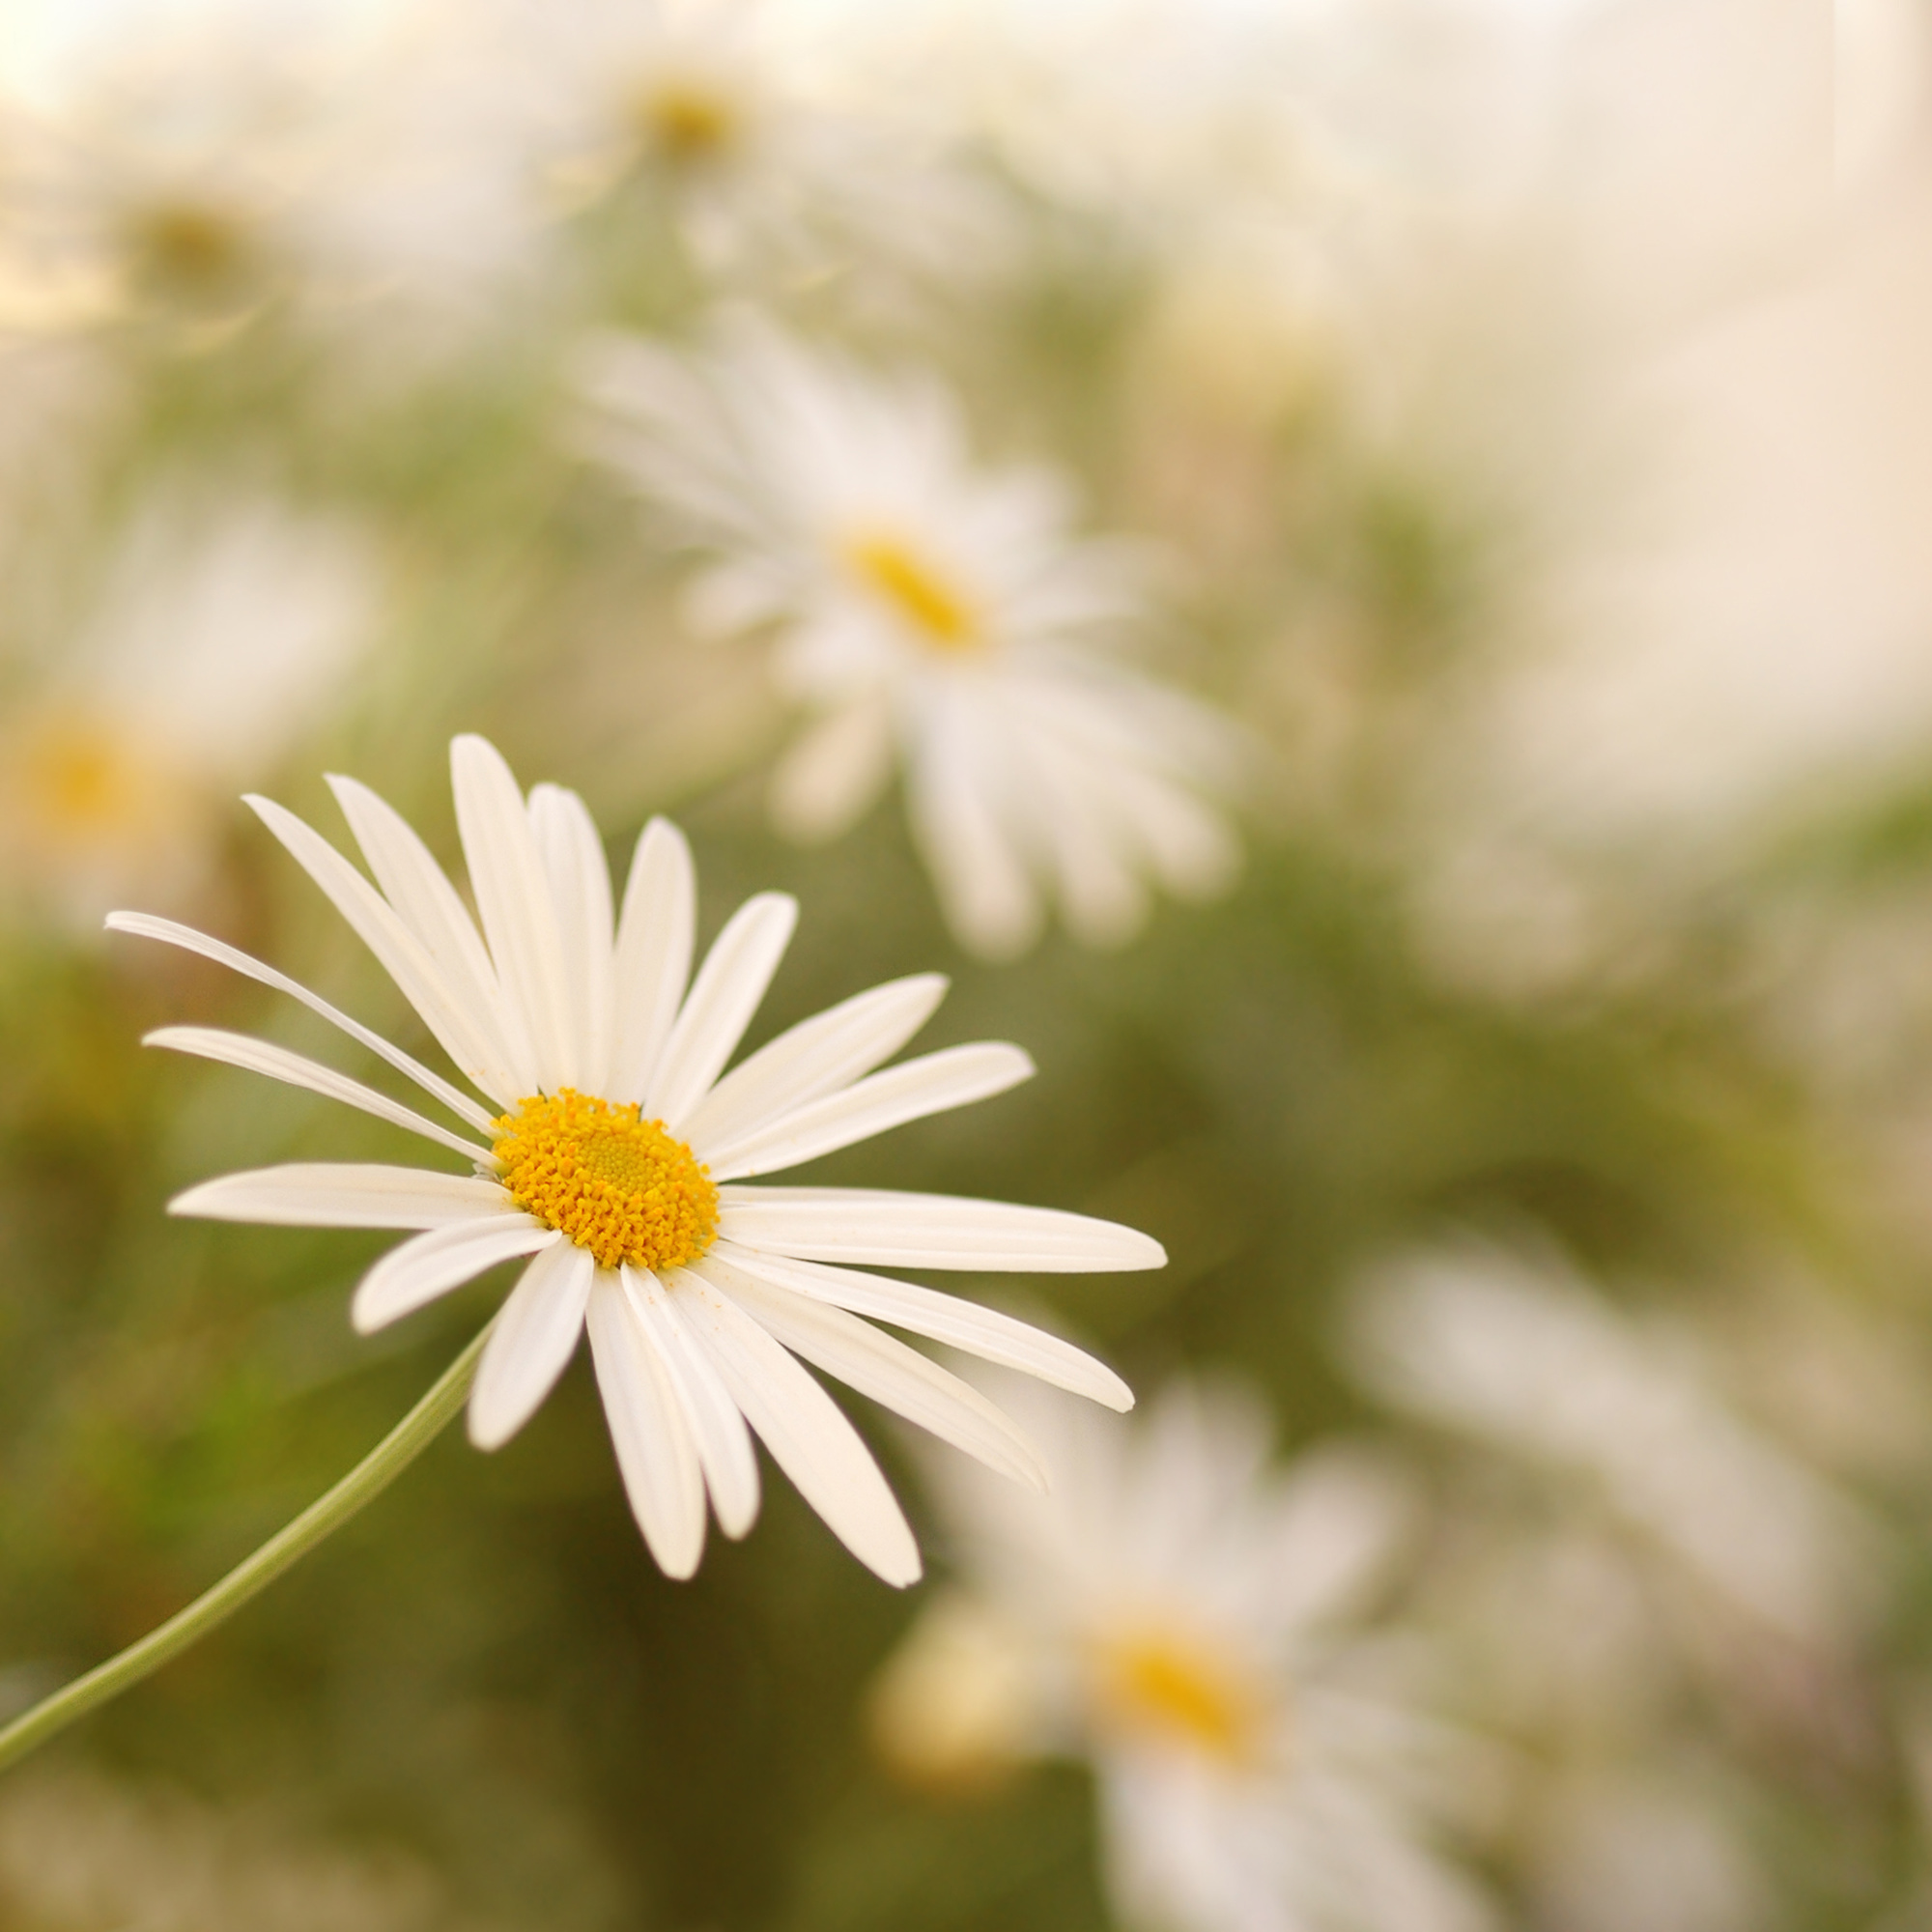 Vintage daisy flower with blurred background